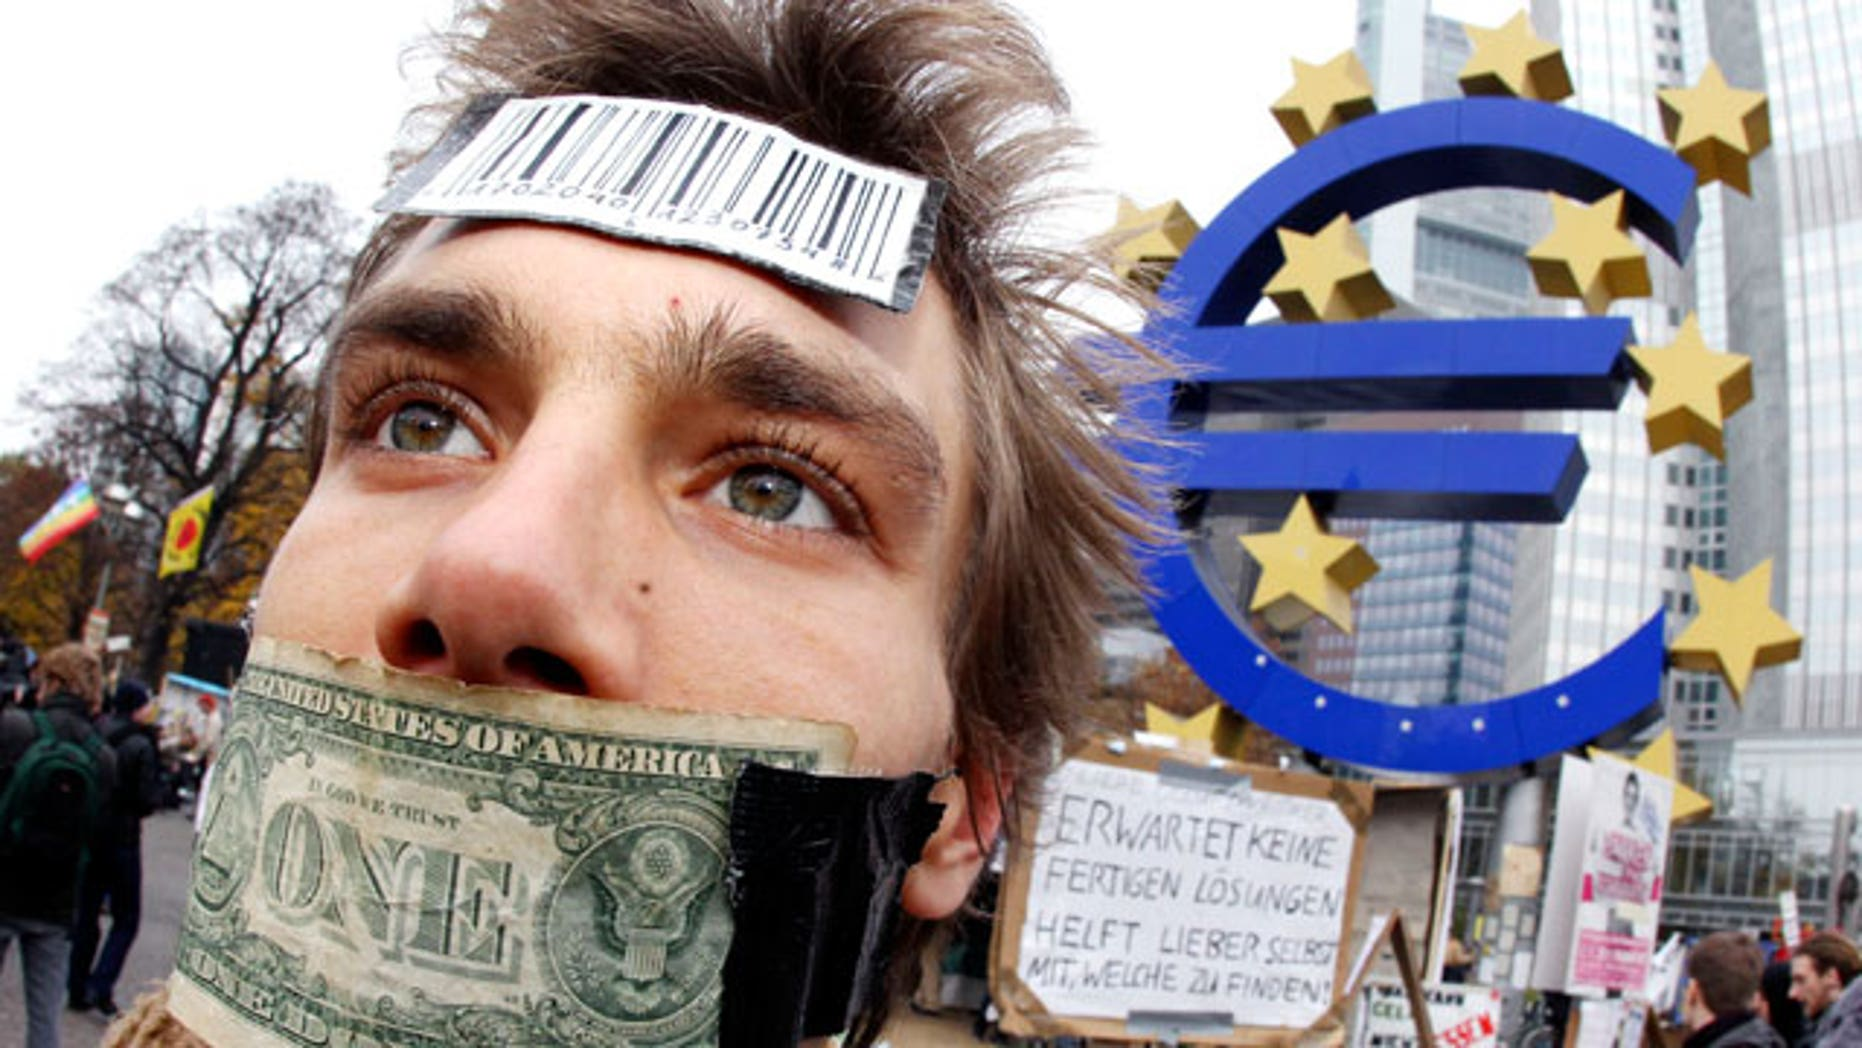 Nov. 12, 2011: A demonstrator has taped his mouth with a dollar bill in front of the European Central Bank in Frankfurt, Germany.